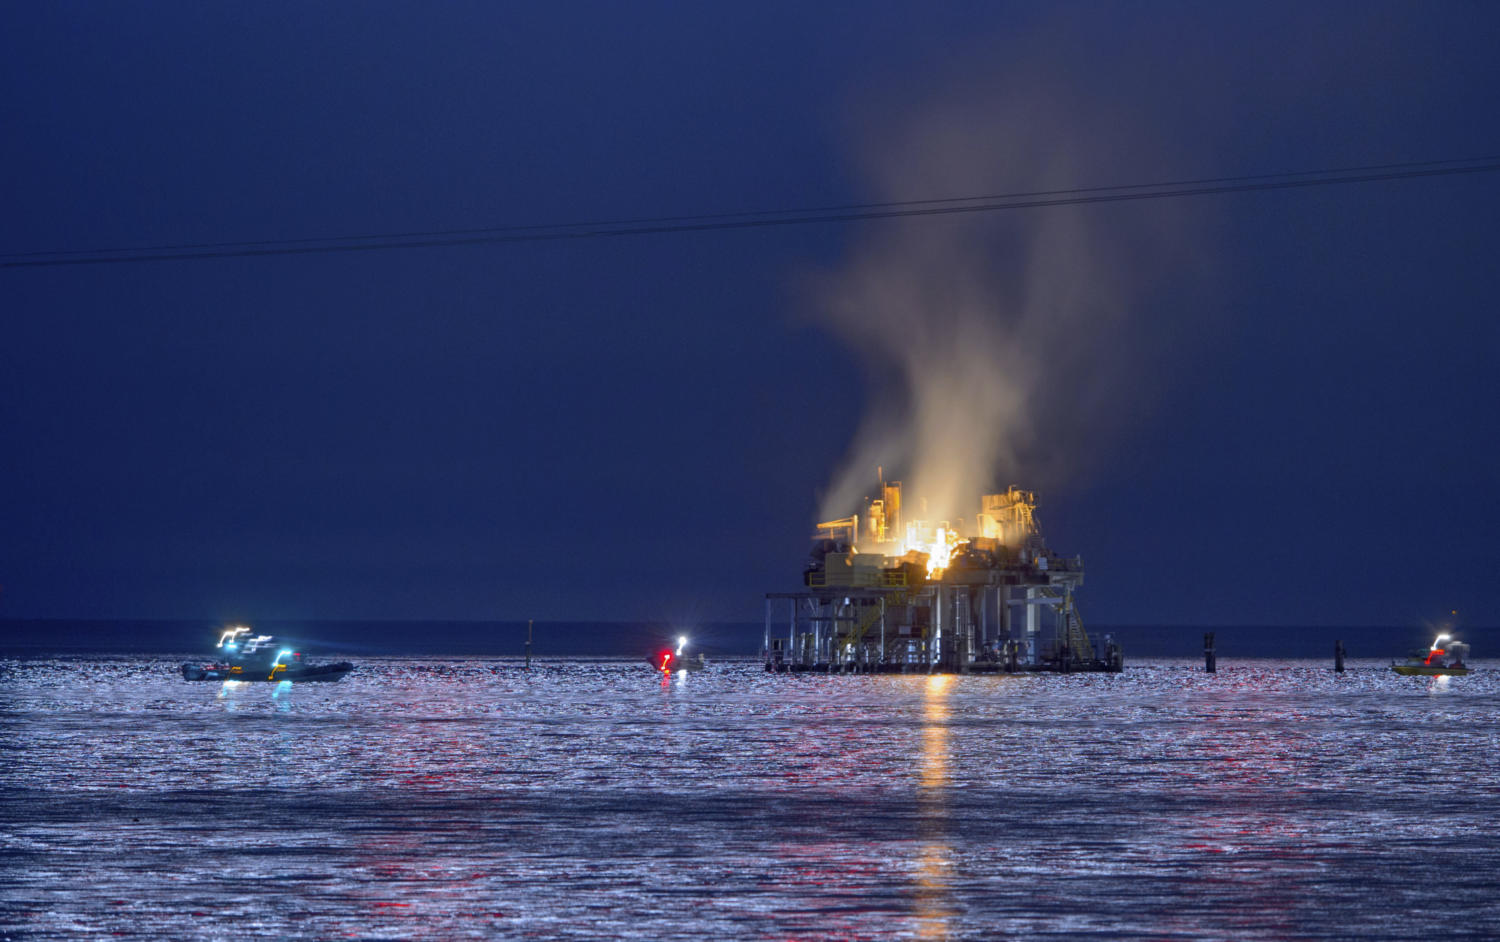 Jefferson Parish, La., authorities and others from other parishes respond to an oil rig explosion in Lake Pontchartrain off Kenner, La., Sunday, Oct. 15, 2017. (Matthew Hinton/The Advocate via AP) Photo credit: Associated Press